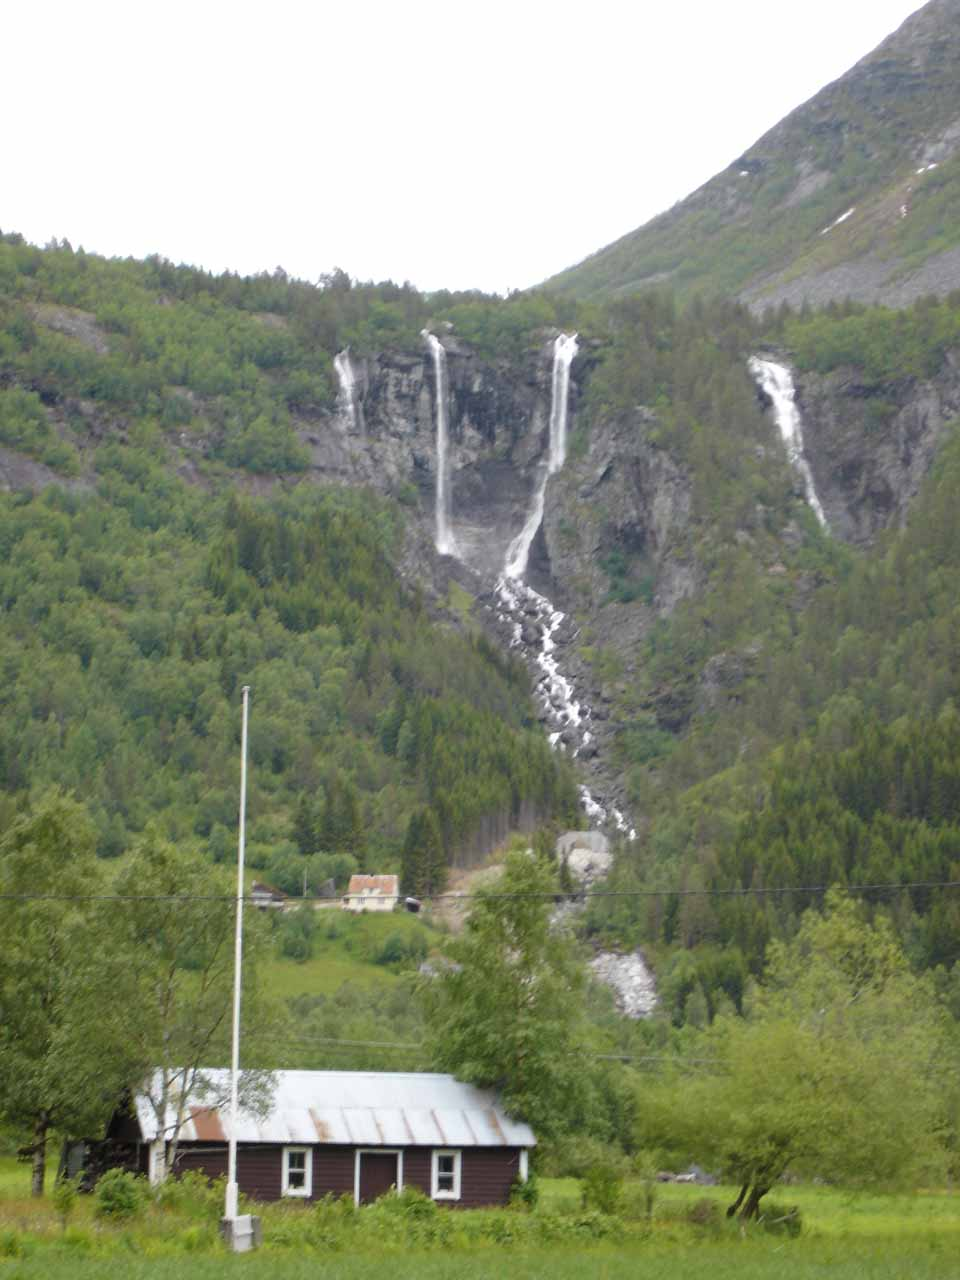 After visiting the Nigard Glacier, we spent the remainder of the late evening daylight waterfalling Jostedalen Valley starting with Geisfossen